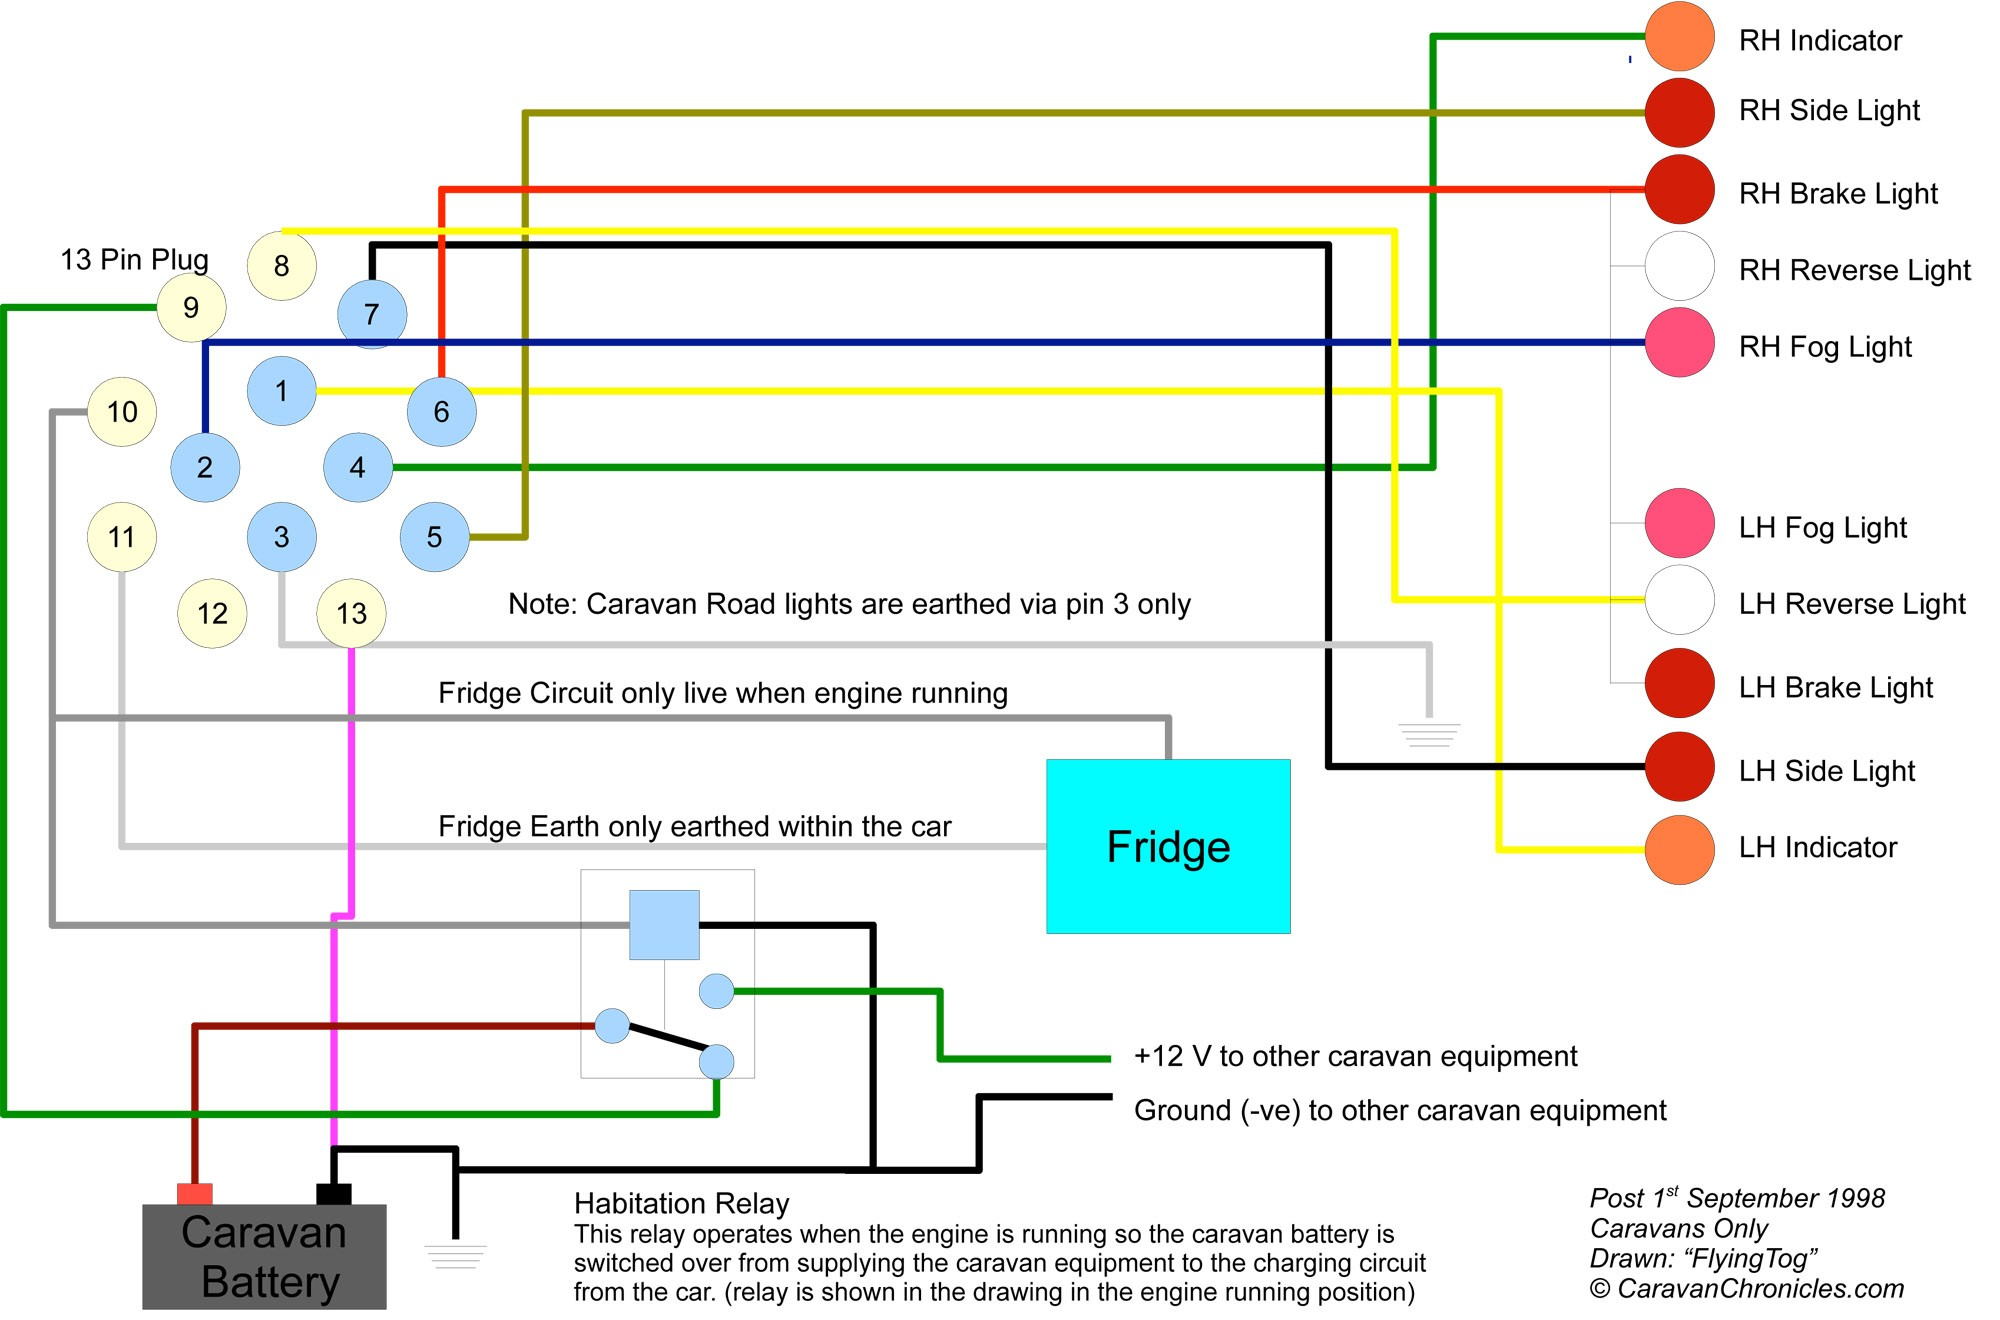 Wiring Diagram for Trailer Amazing Wiring Diagram for Trailer Hook Up Everything You Of Wiring Diagram for Trailer